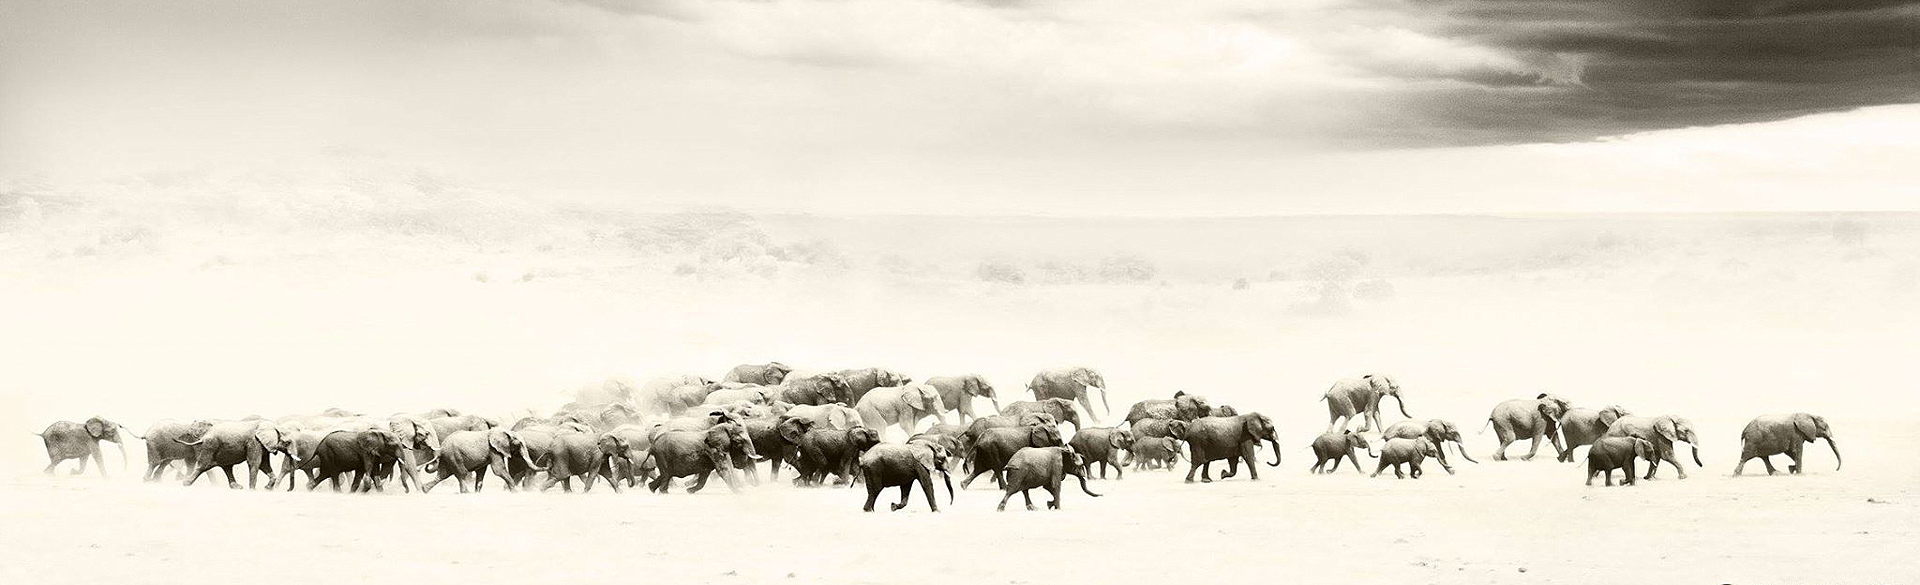 Elephant stampede in Hwange National Park by Tami Walker